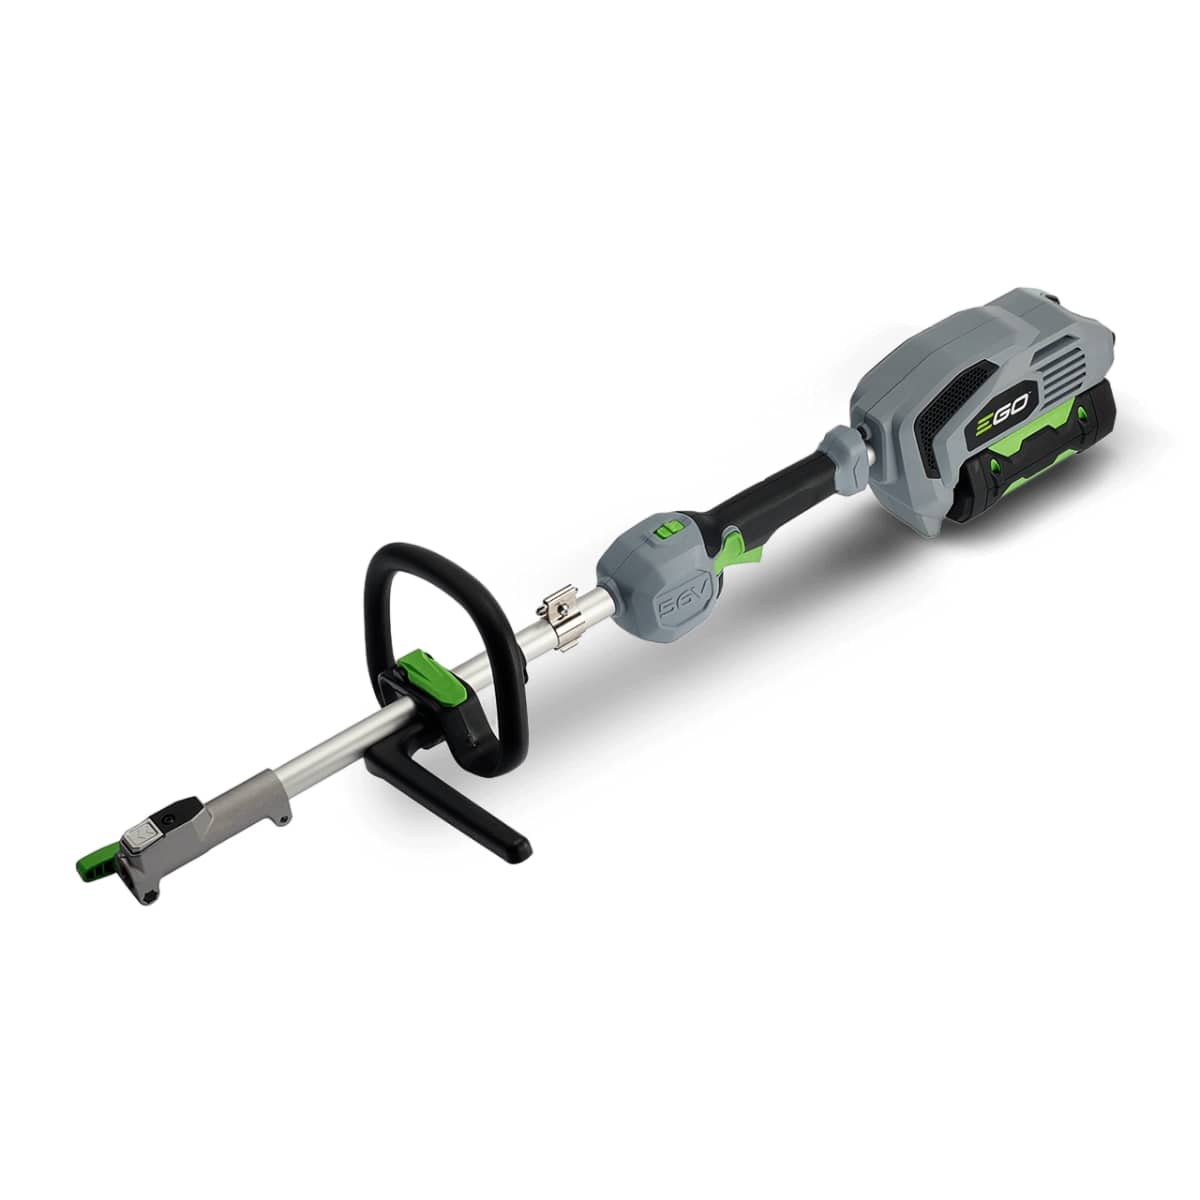 EGO Power Products PH1400E 56v Multi-Tool Power Head Body Only